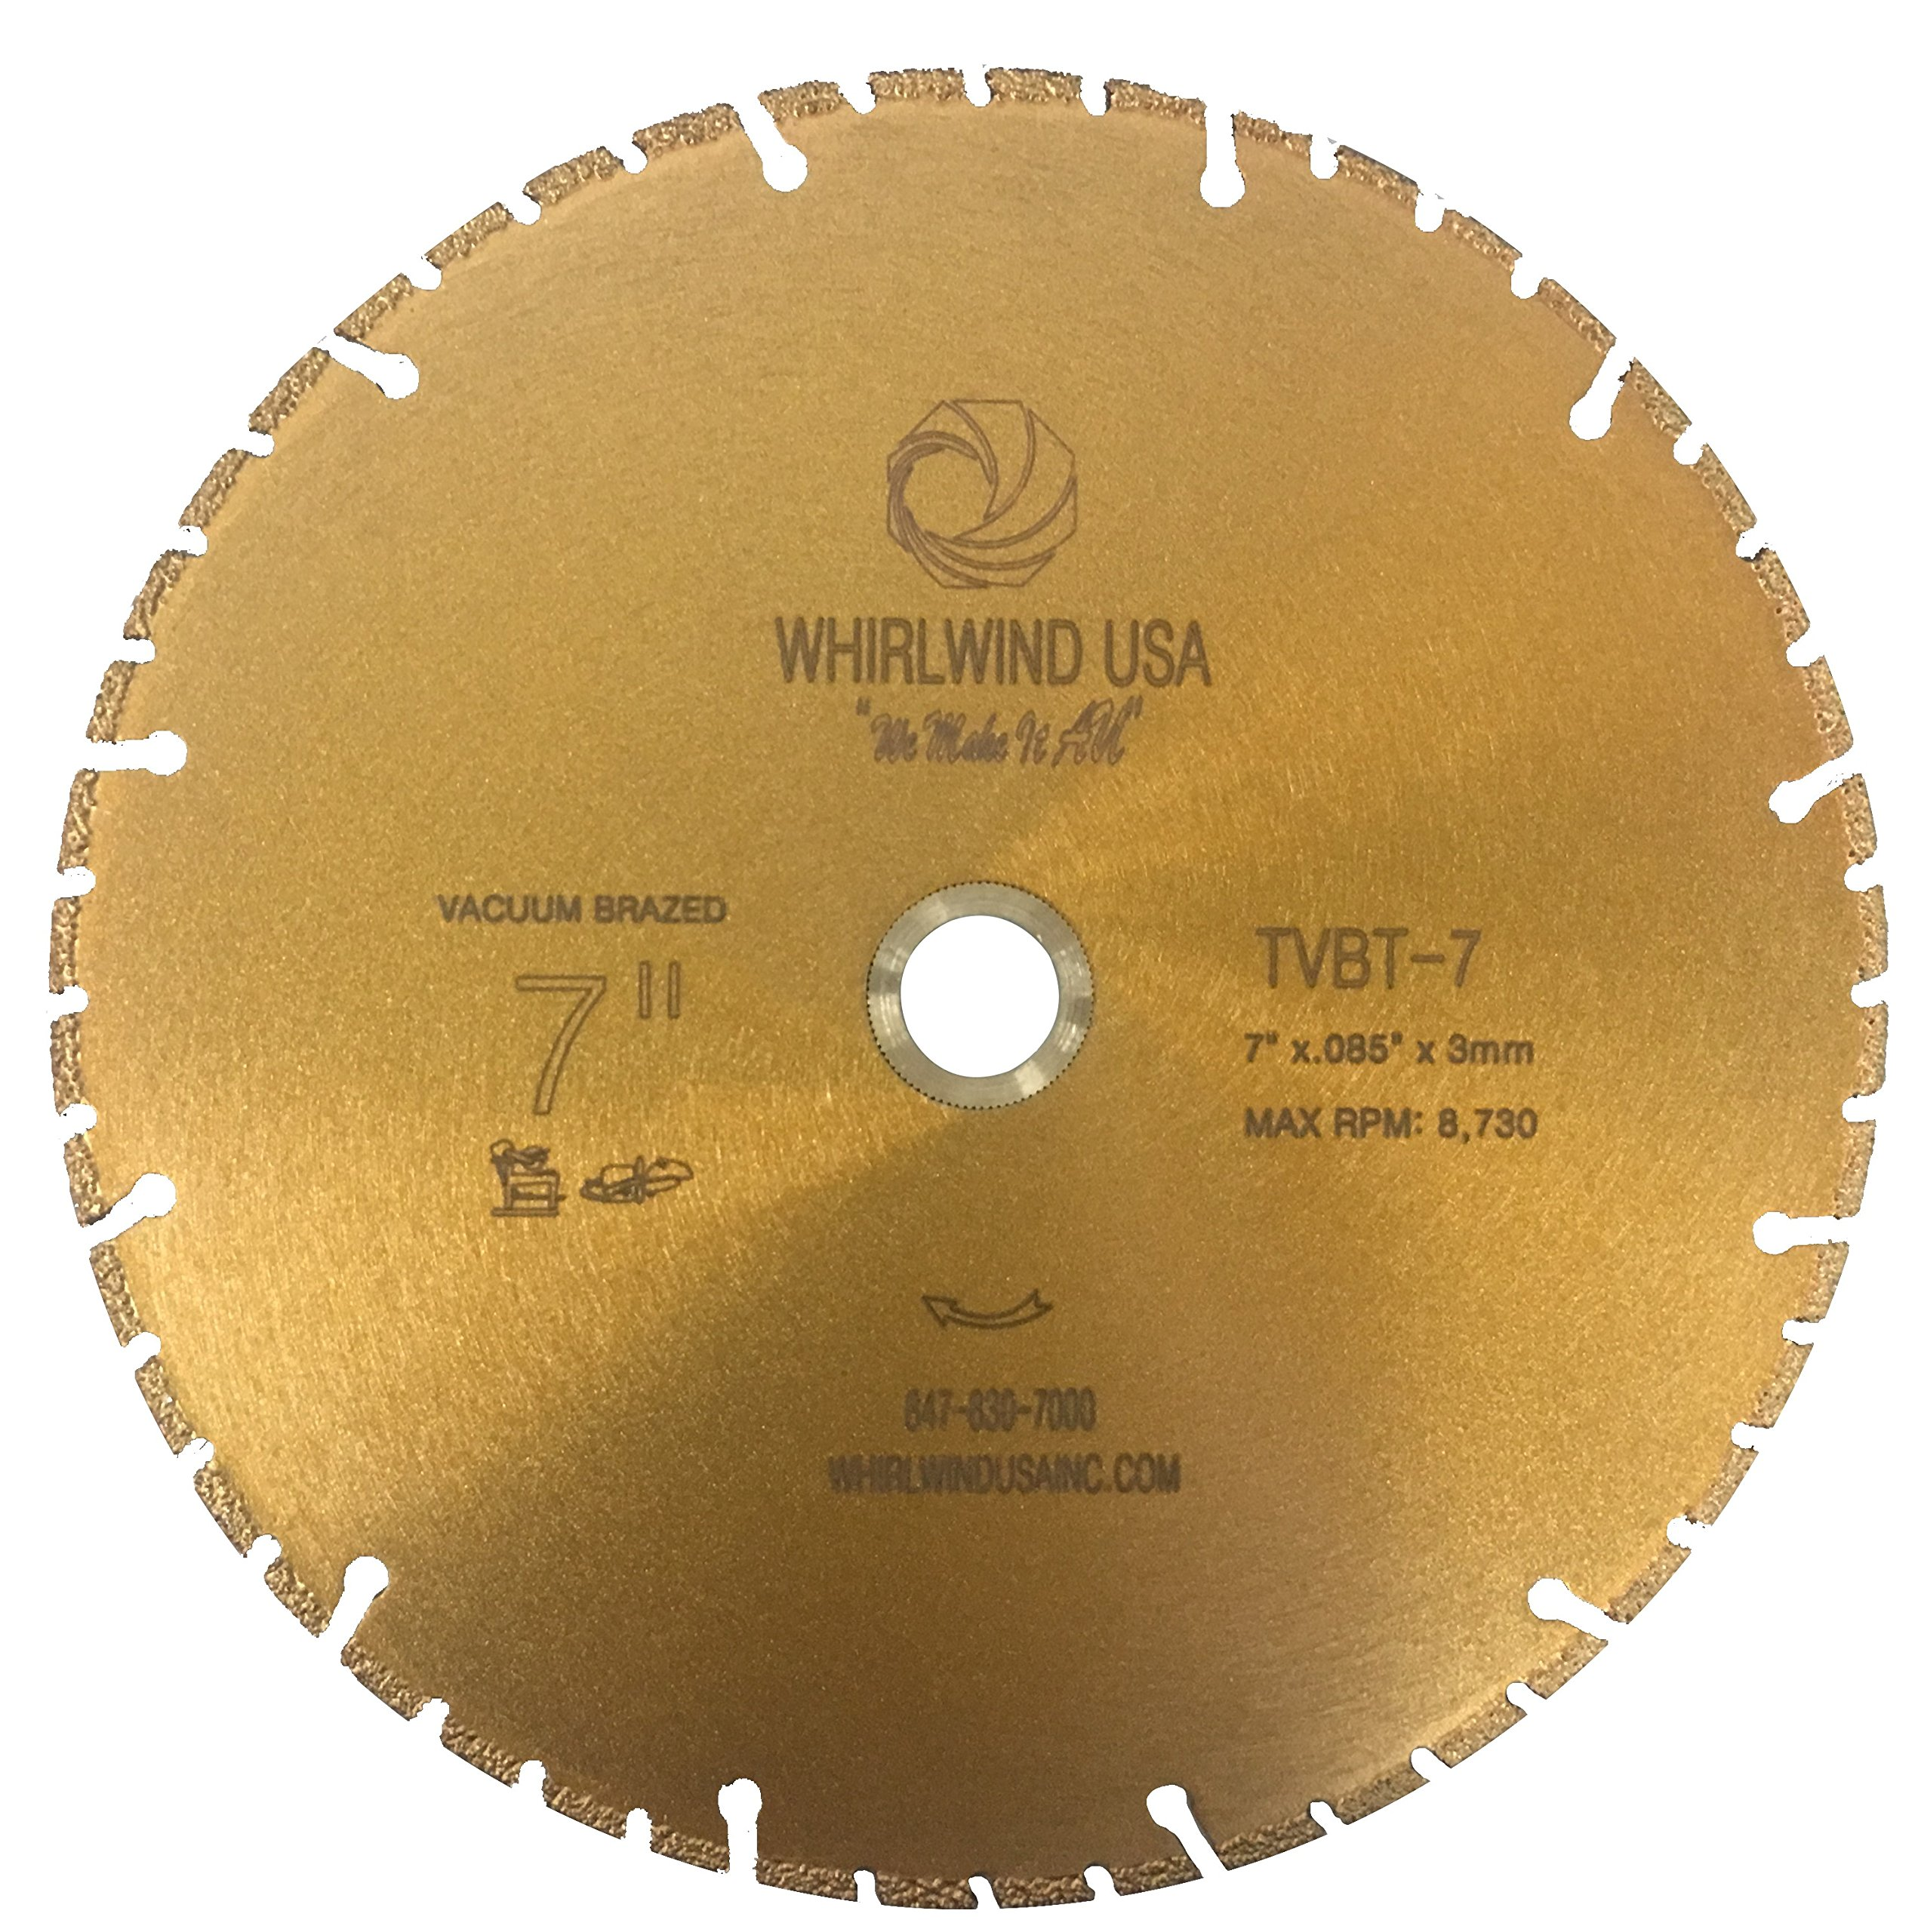 Whirlwind USA TVBT 7 in. All Purpose Metal Cutting Dry or Wet Cutting Vacuum-Brazed Segmented Diamond Blades for Metal and Plastic Materials (Factory Direct Sale) (7'')